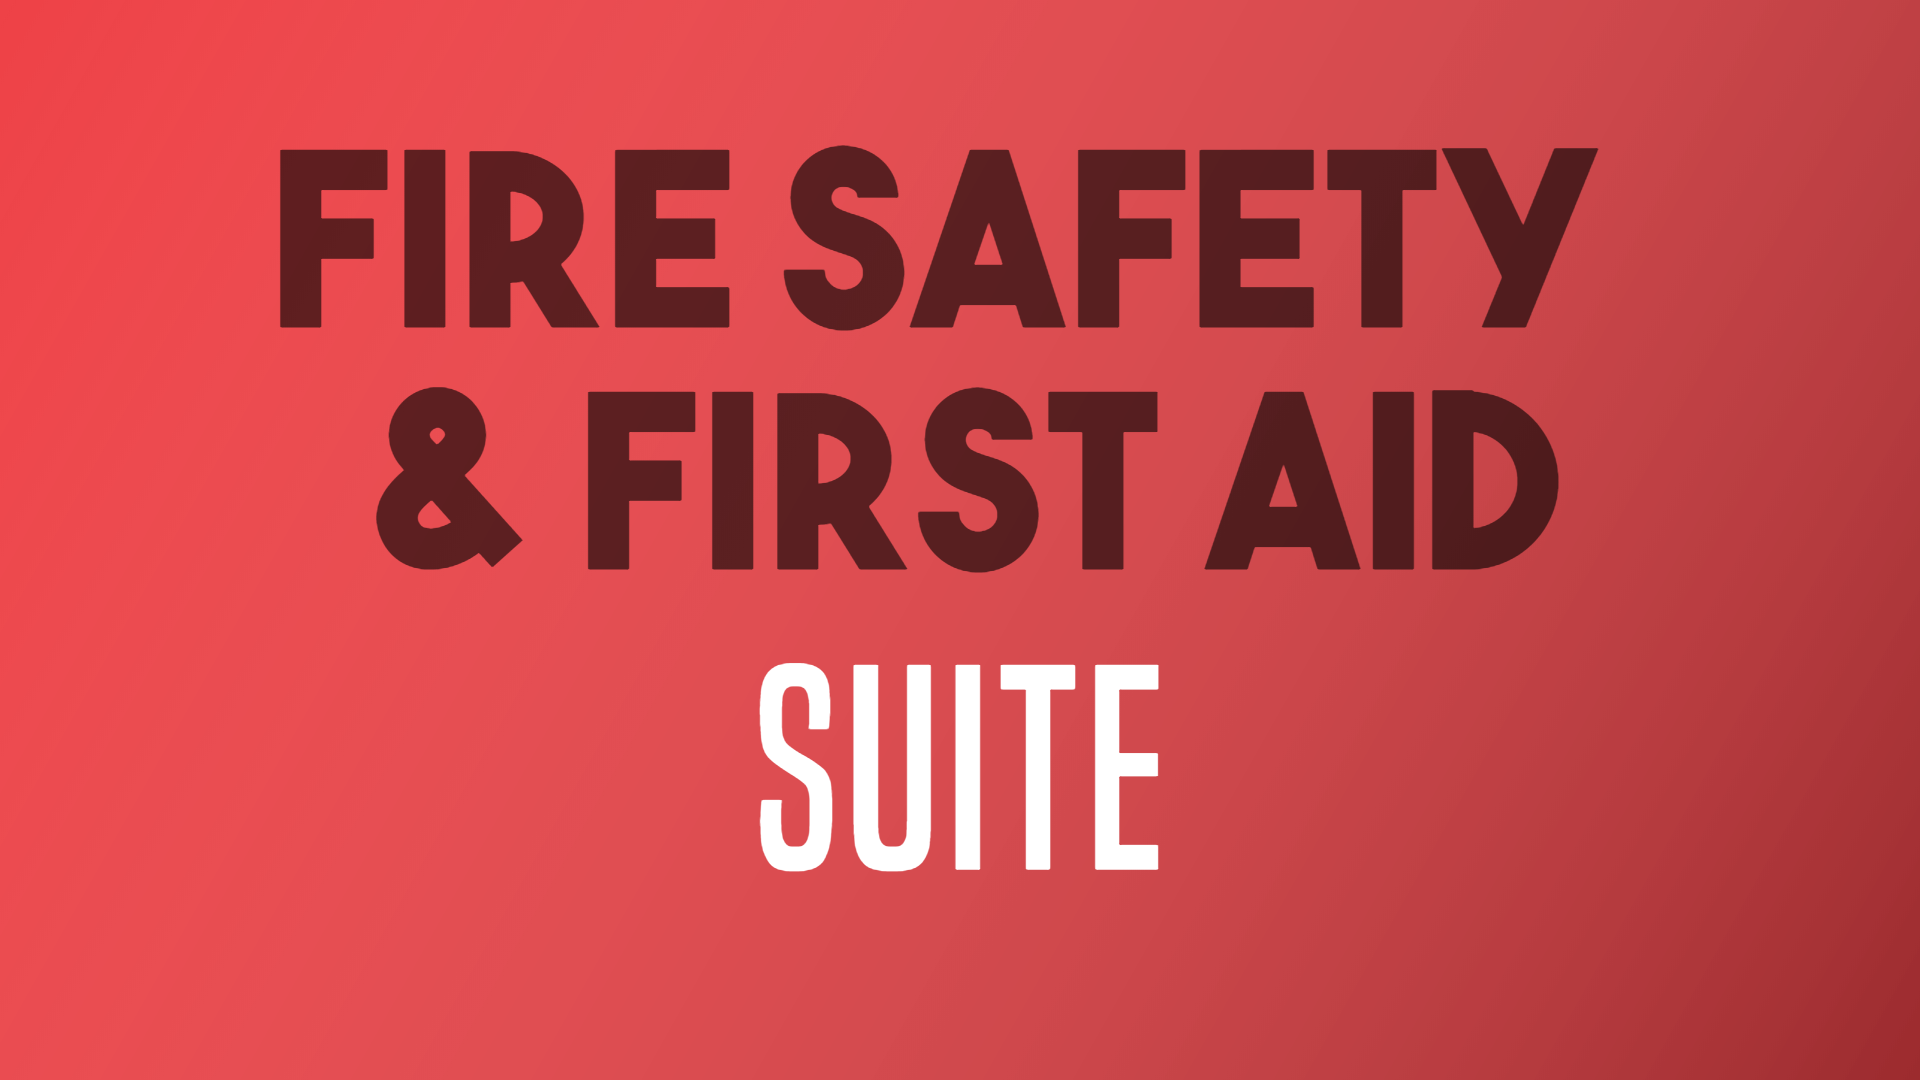 fire safety & first aid